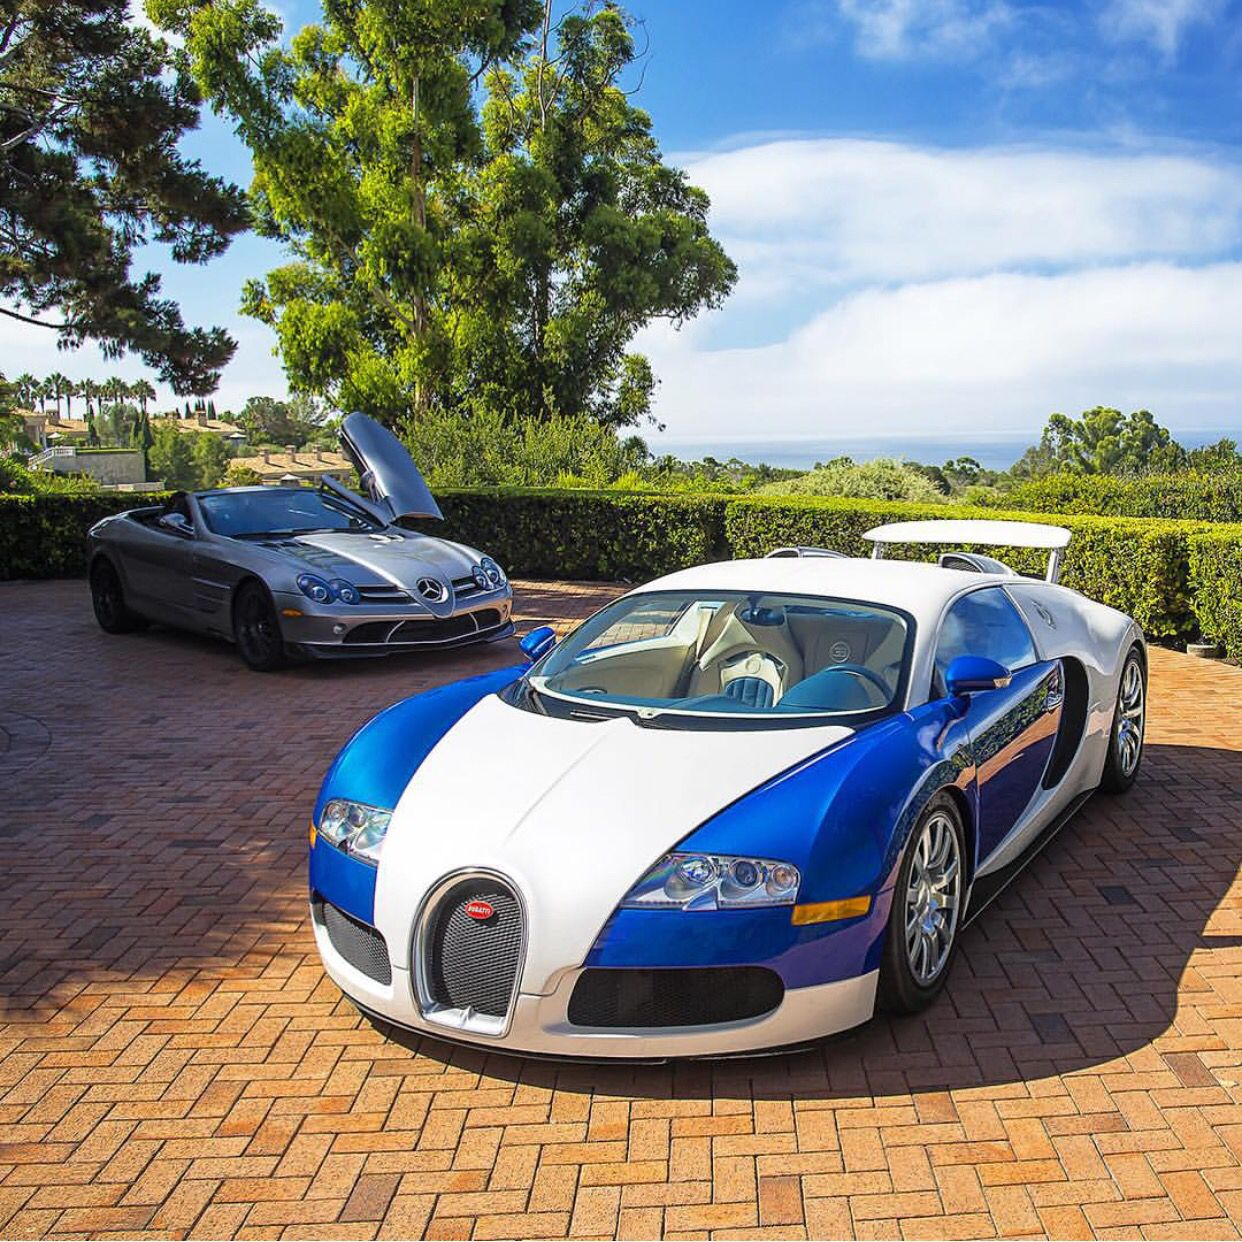 Bugatti Veyron Roadster: Bugatti Veyron Painted In Blue And White And A Mercedes